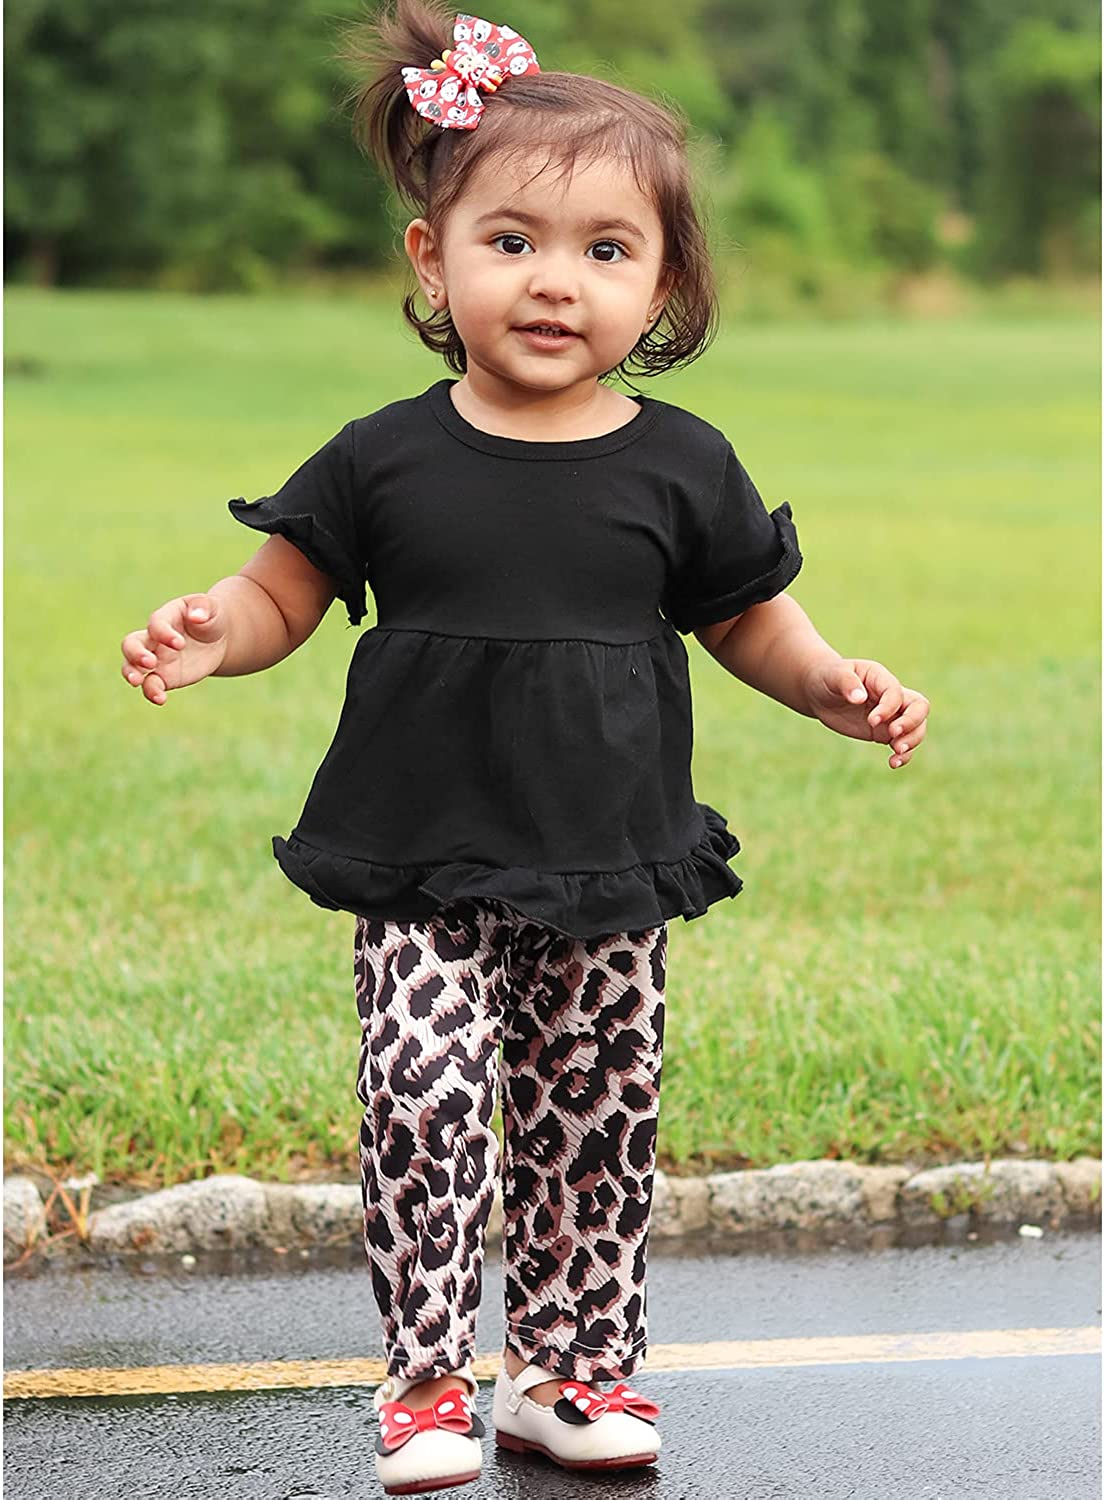 Toddler Girl Clothes 20M 20T Baby Girl Summer Outfits Ruffle Short Sleeve  Tops Floral Pants Cute Headband Set